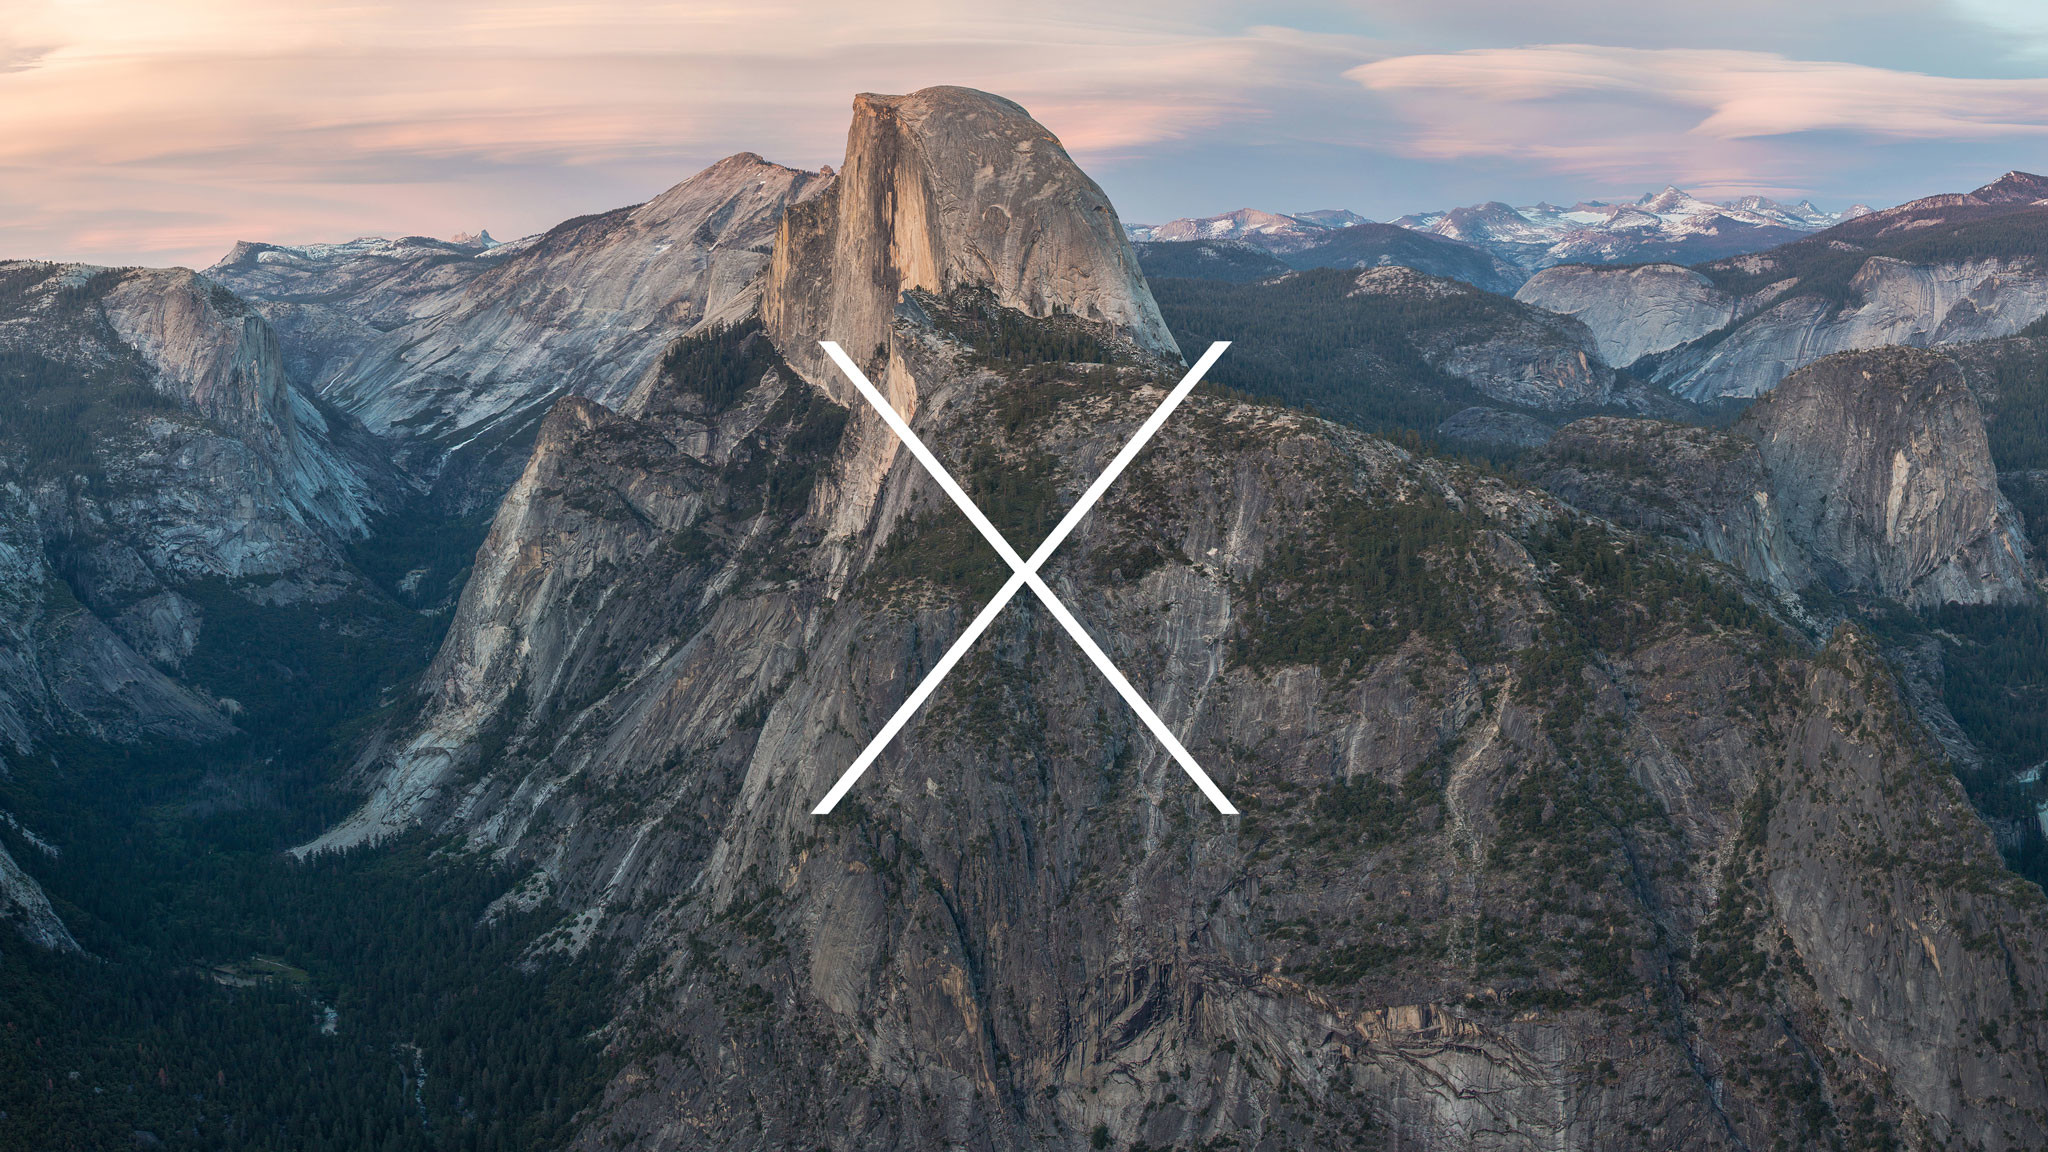 2048x1152 ... Mac OS X Yosemite Wallpapers, Amazing Mac OS X Yosemite Wallpapers .